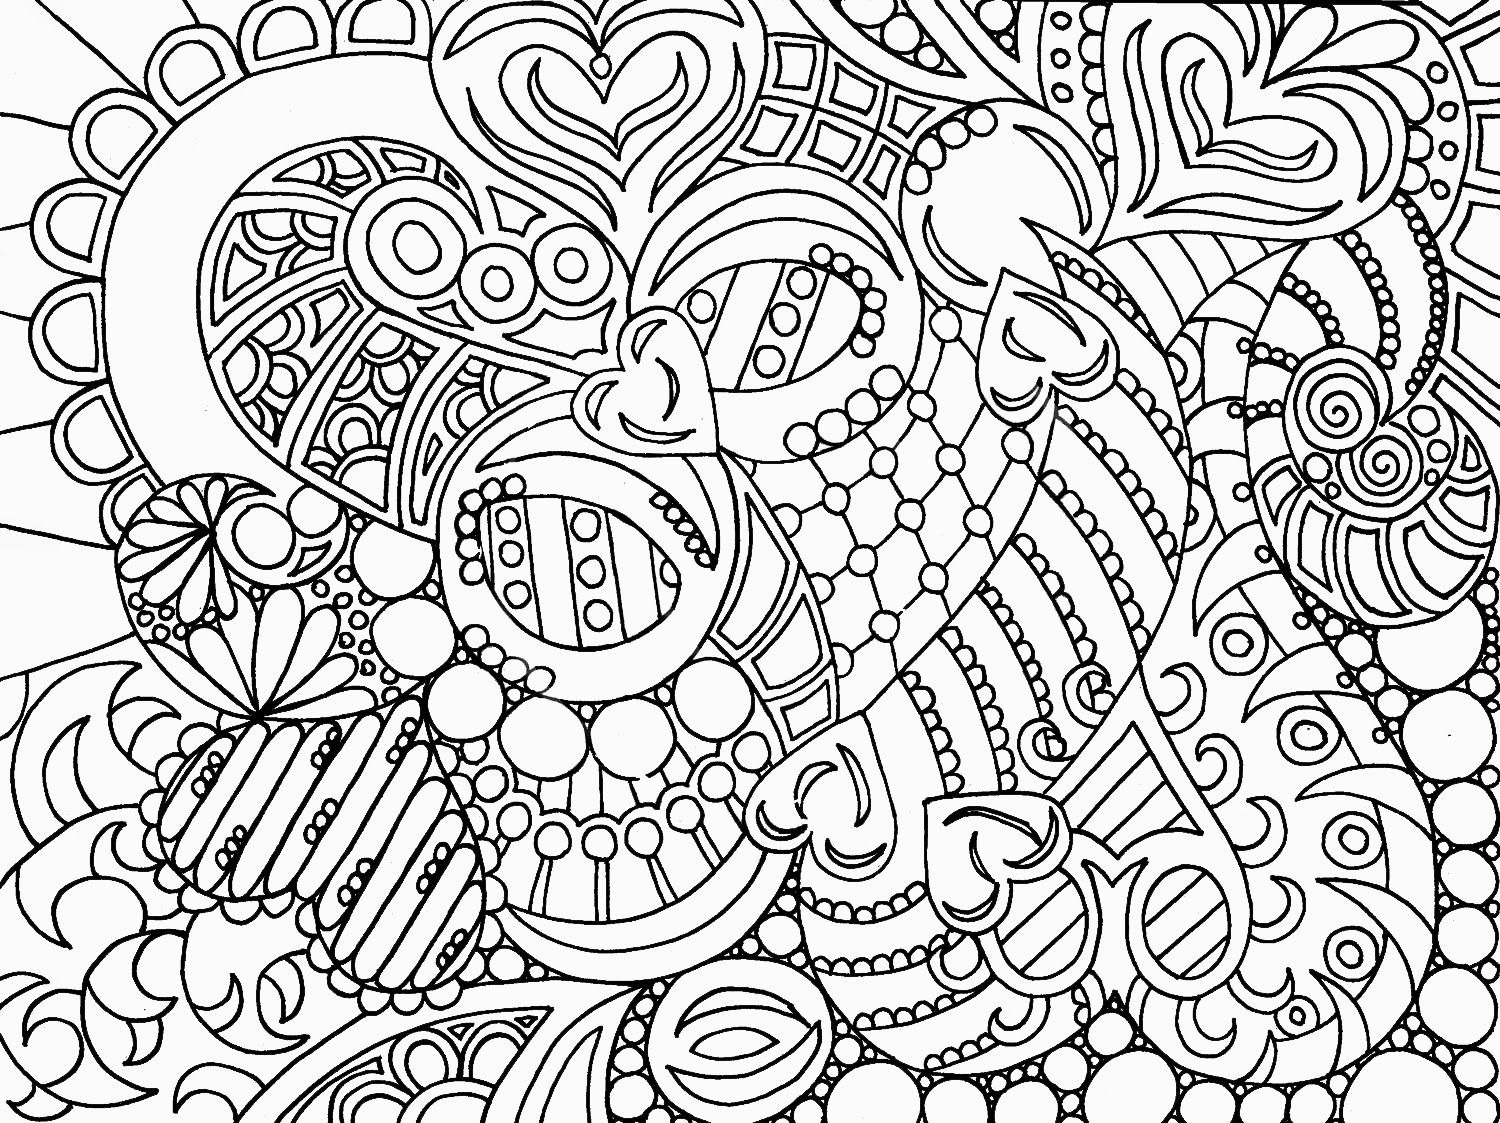 Free coloring pages for adults abstract -